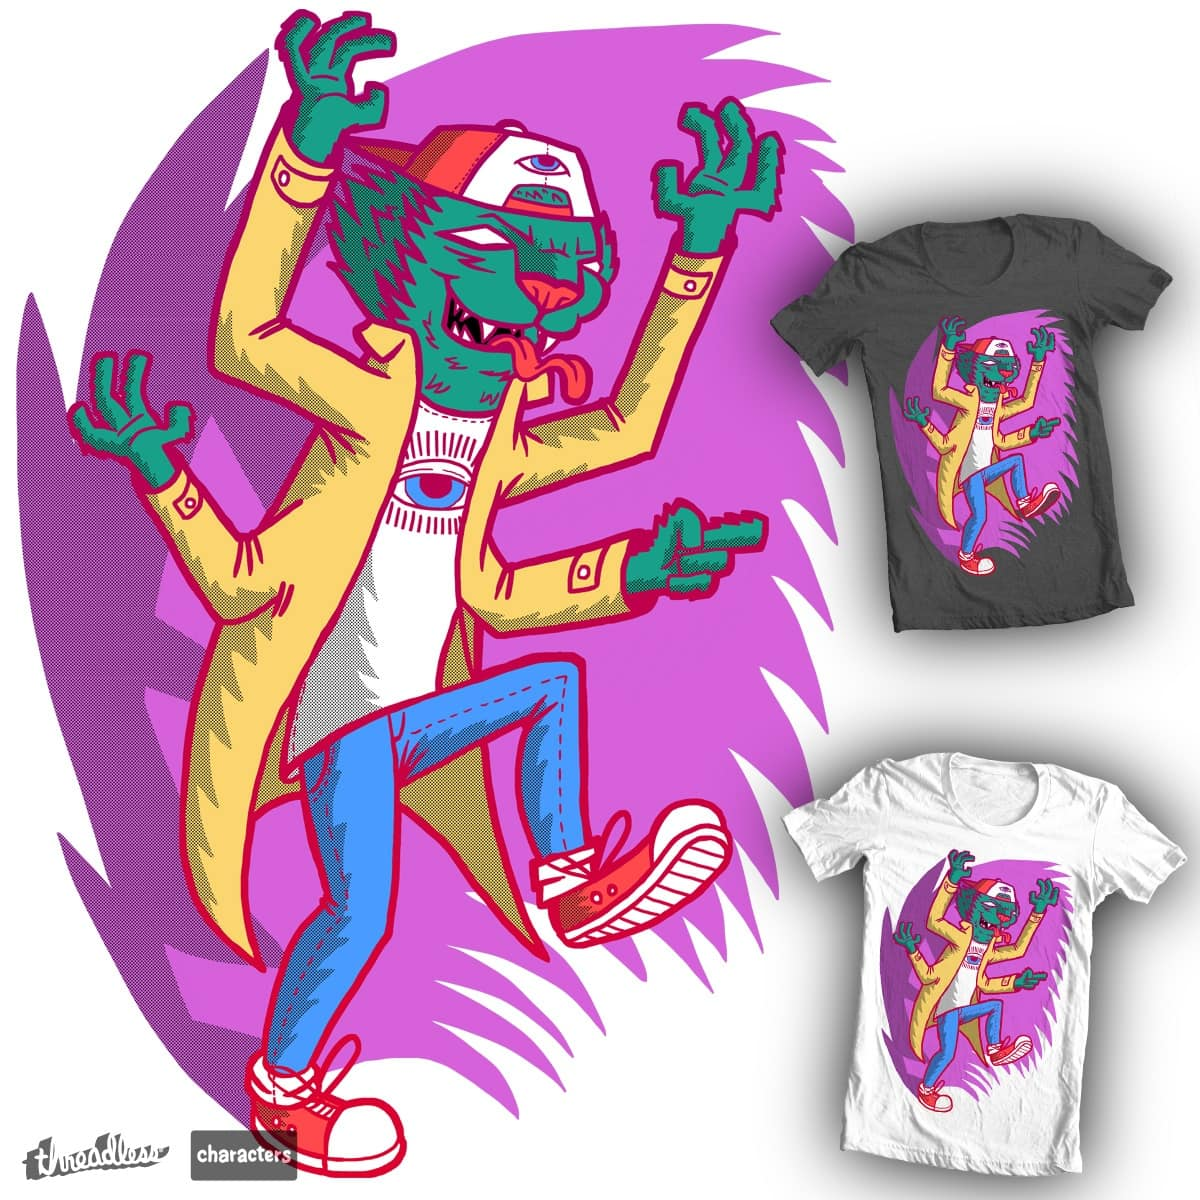 Larry by Jaxxer on Threadless